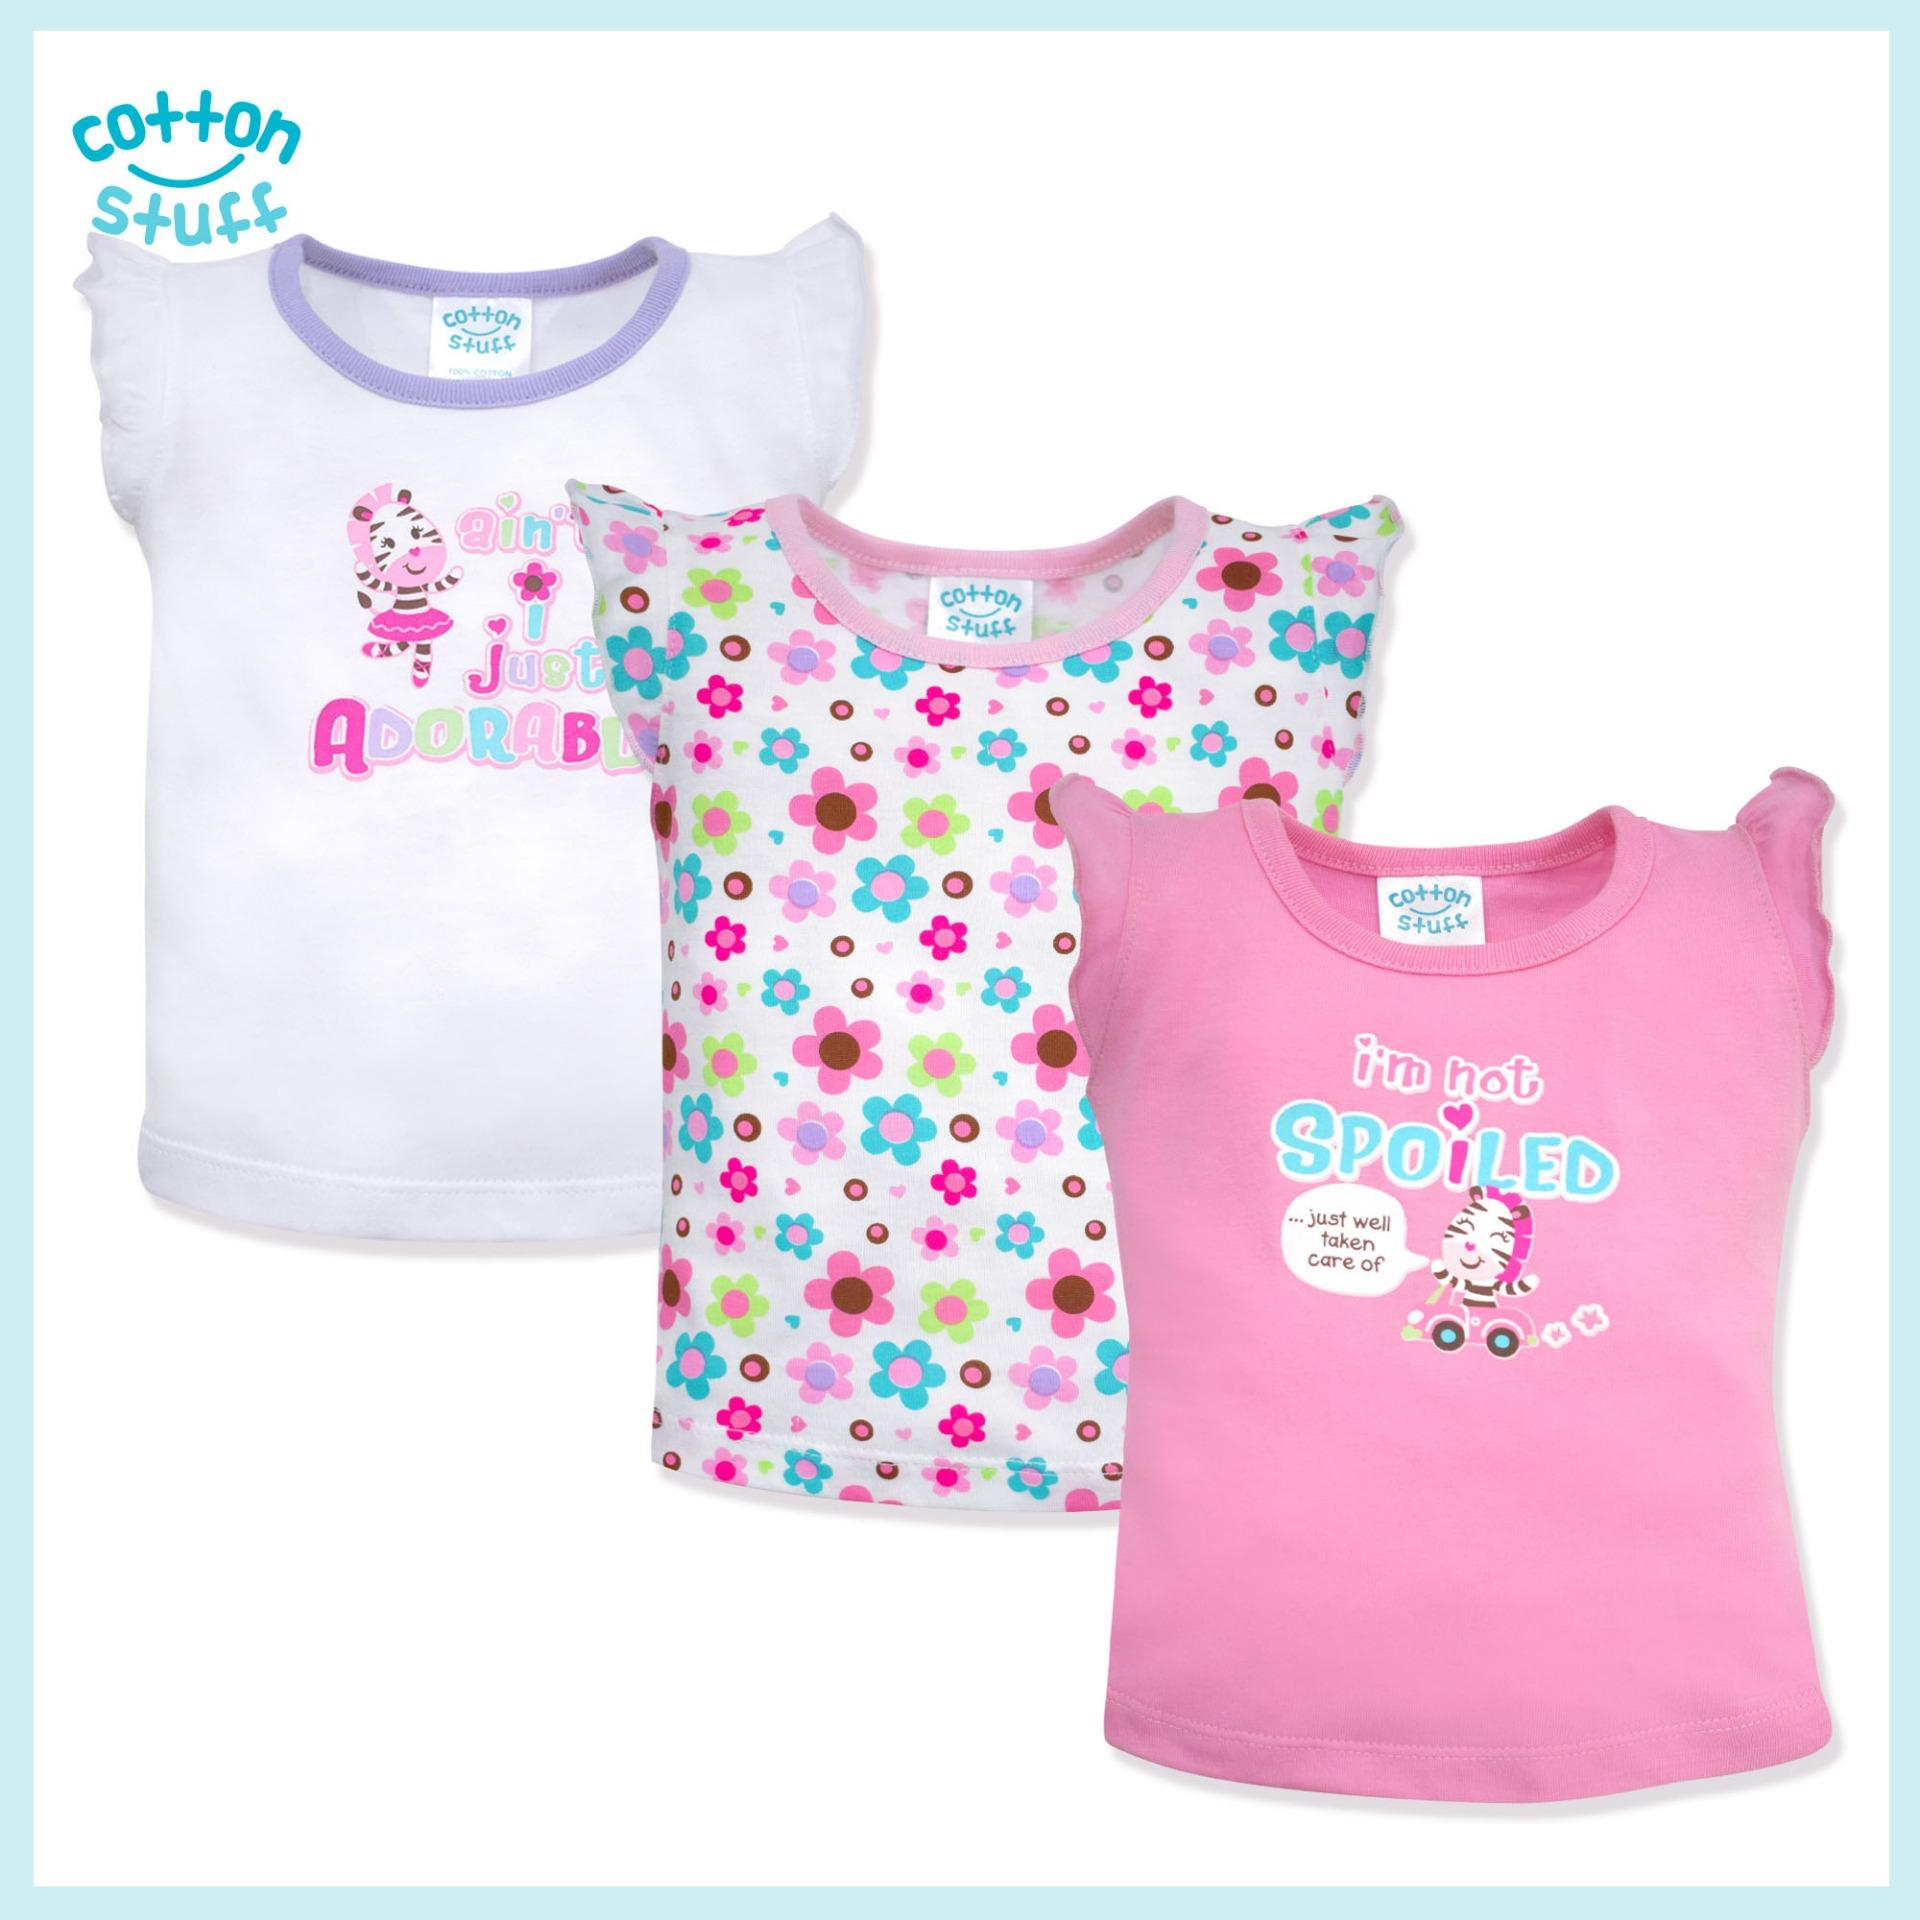 08fe9c45ac Cotton Stuff - 3-piece Sleeveless Ruffle Blouse (Girls and Their Toys)